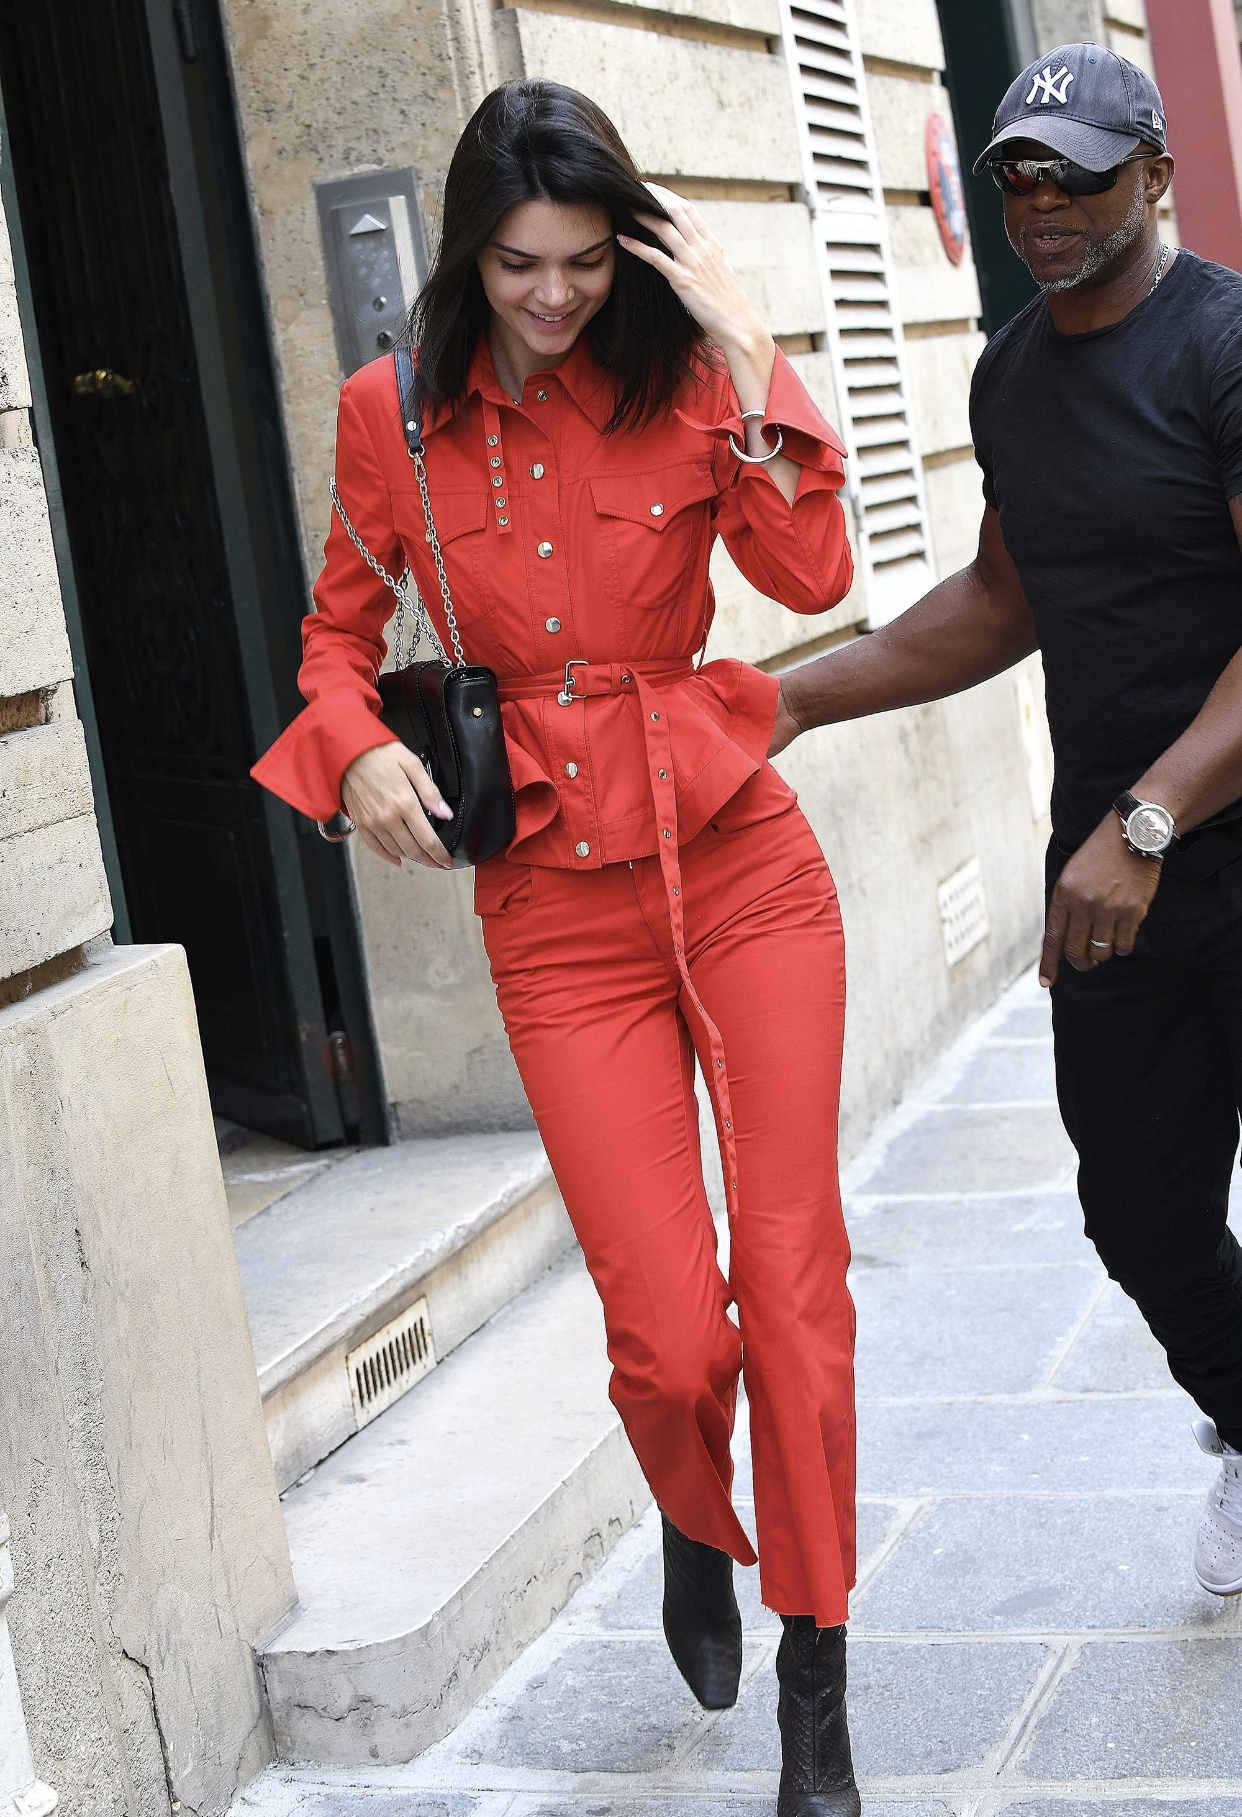 KENDALL ROCKS ATOREADOR SUIT - IF YOU THOUGHT YOU WAS STEPPING INTO SOMETHING SEXY WELL GET THIS, KENDALL JENNER HAS WOWED US AGAIN. IN PARIS TO SEE THE MAN HIMSELF ALEXANDER WANG. KENDALL WAS WEARING UK-BASED DESIGN MARQUES' ALMEIDA' TAKES ON STYLE WITH AMAZING COLOR, TEXTILE, AND ITS CREATIVE EDGE. THE FIERY ELEGANT RED JACKET AND TROUSER, PAIRED WITH A MATCHING SKINNY BELT, TIGHTLY CINCHED GIVING THIS JENNER AN HOUR GLASS FIGURE. LONG CHAMP POCKETBOOK, WITH BLACK PYTHON YEEZY BOOTS.📸:splashnews.com